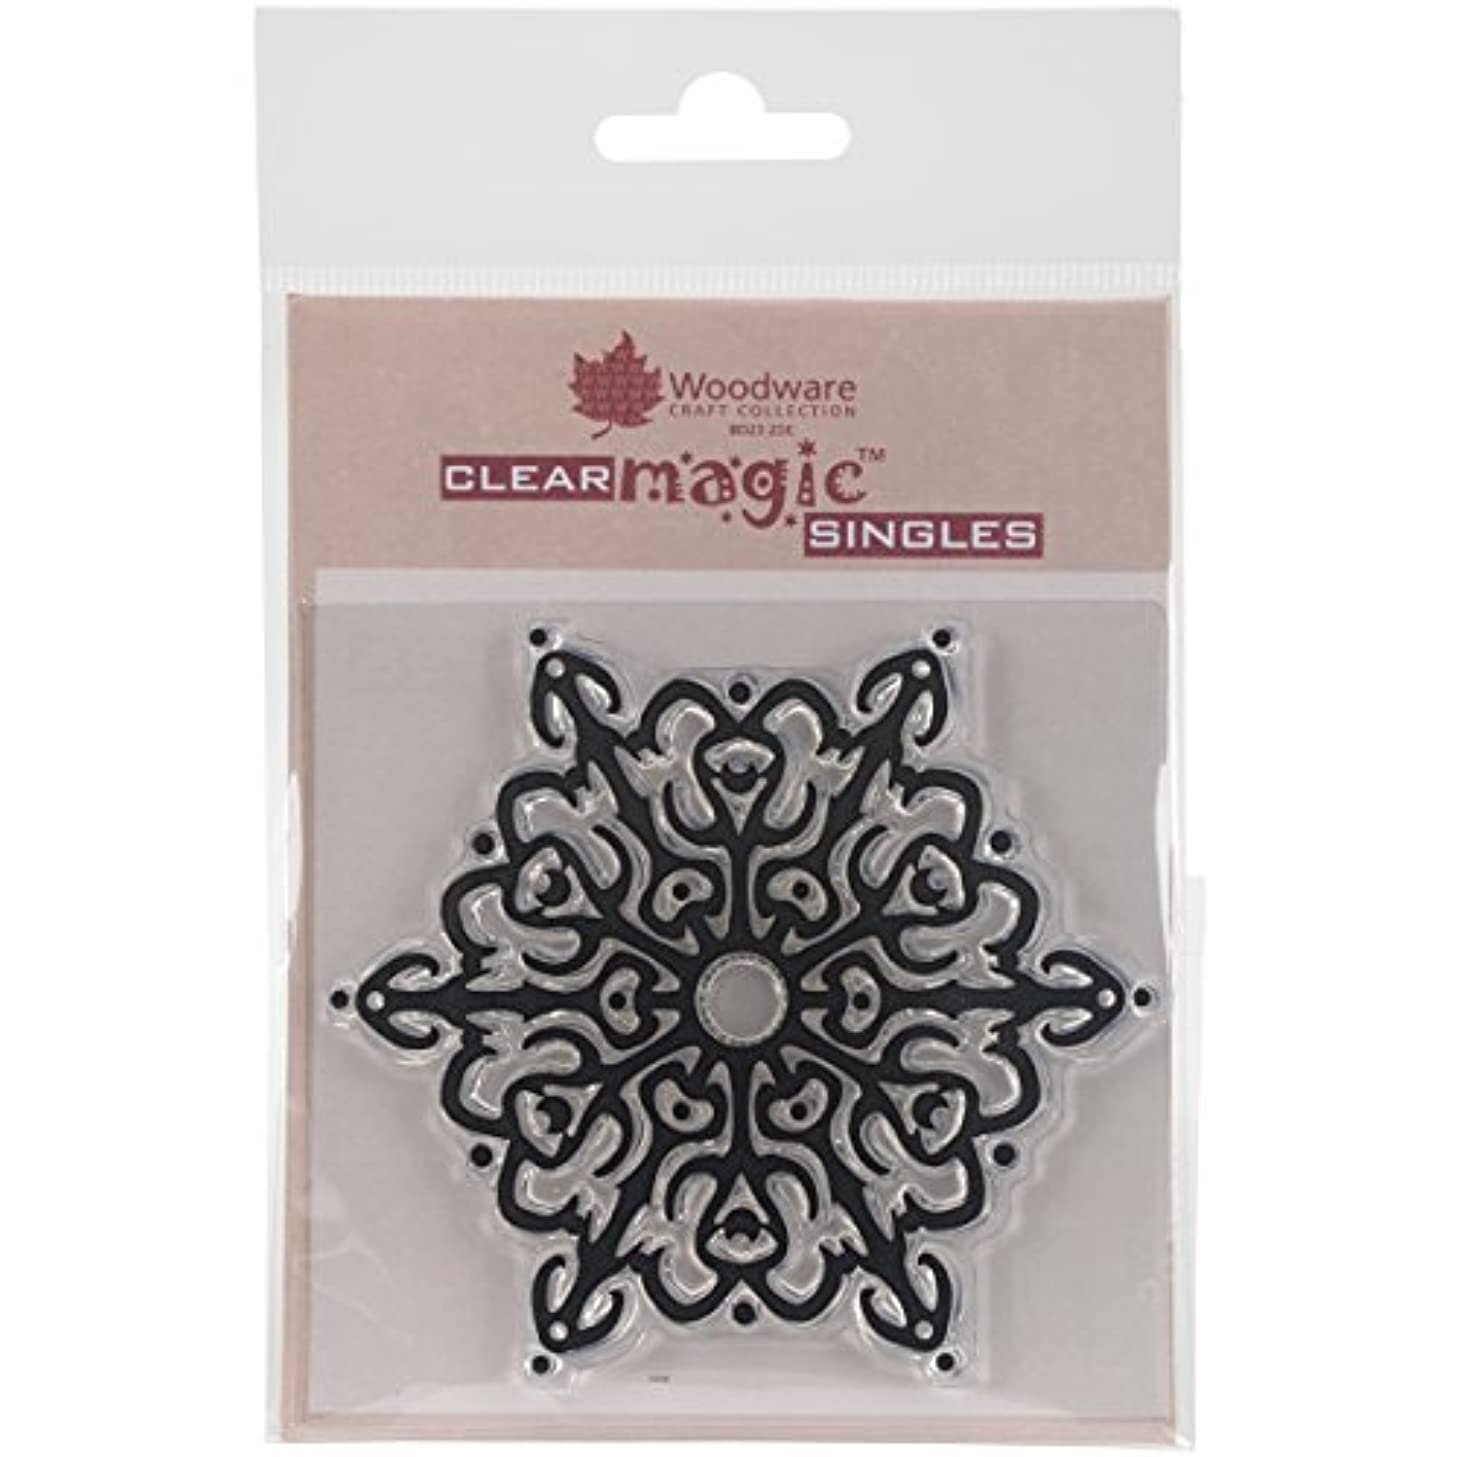 Woodware Craft Collection Nordic Snowflake Stamp Sheet, 3.5